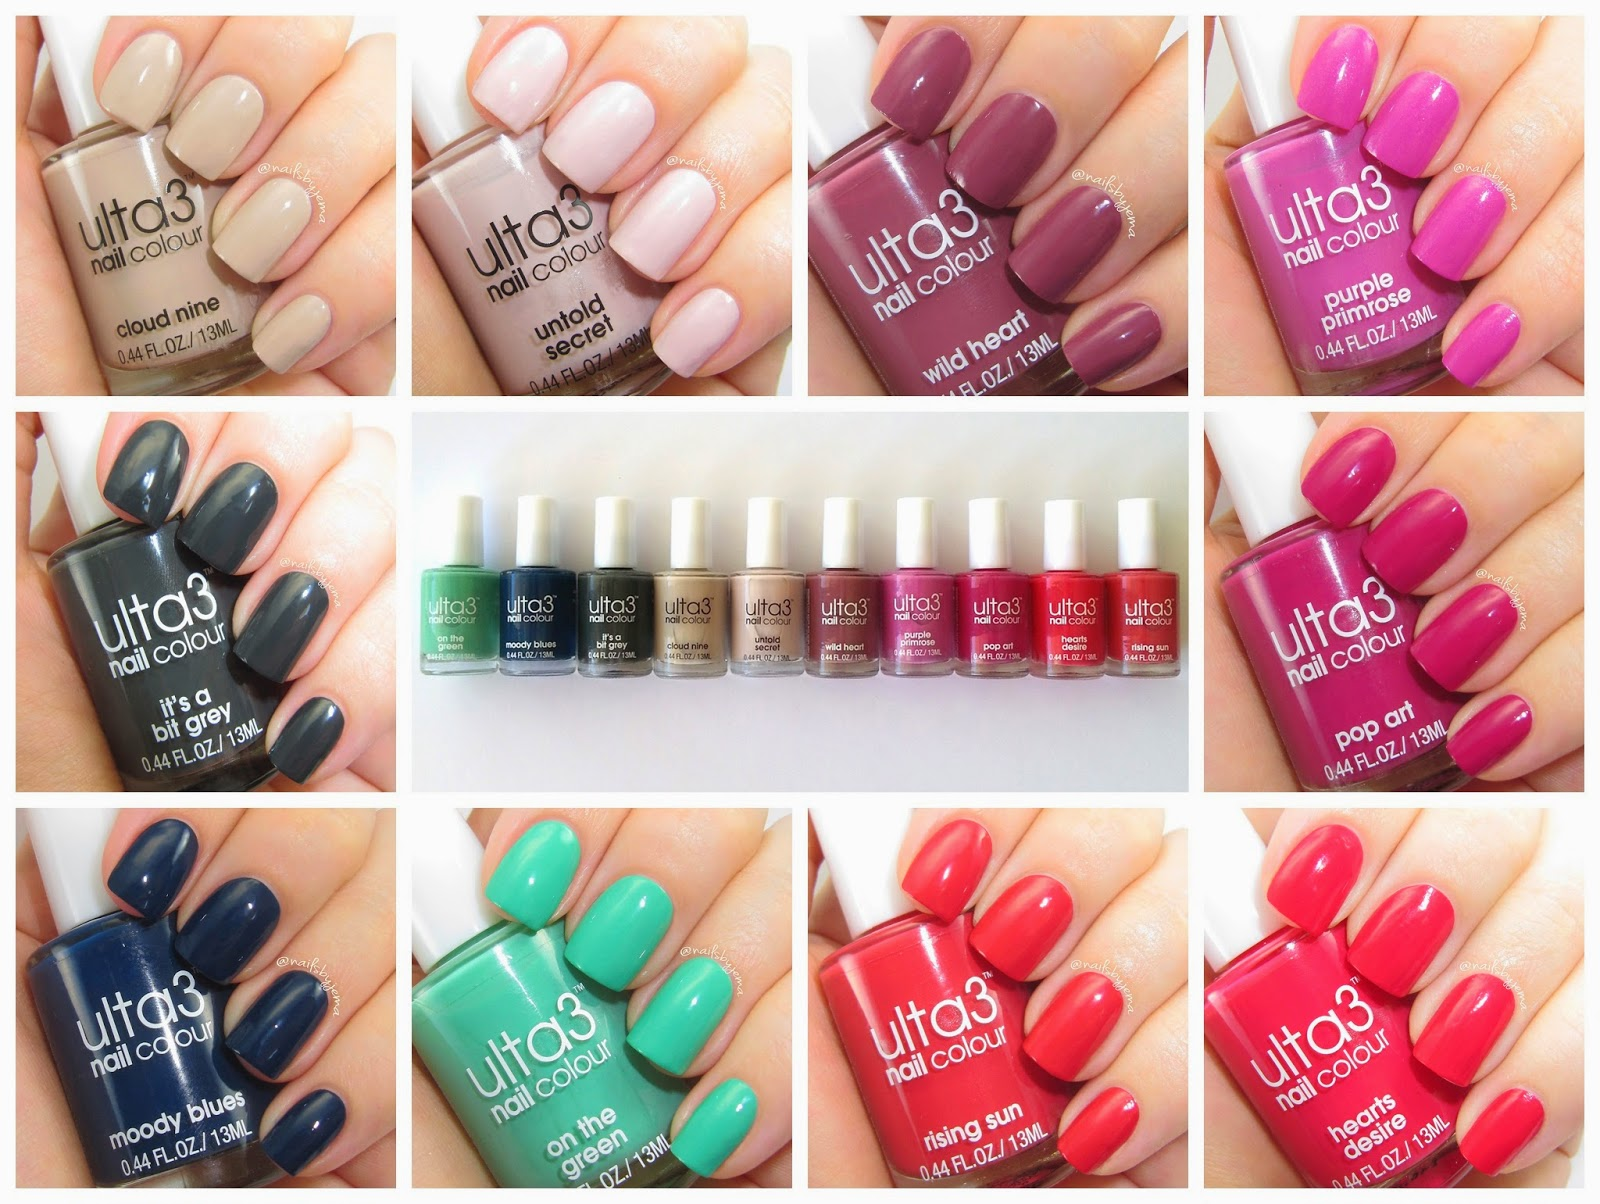 Nails By Jema: Ulta3 June 2014 Release Review & Swatches